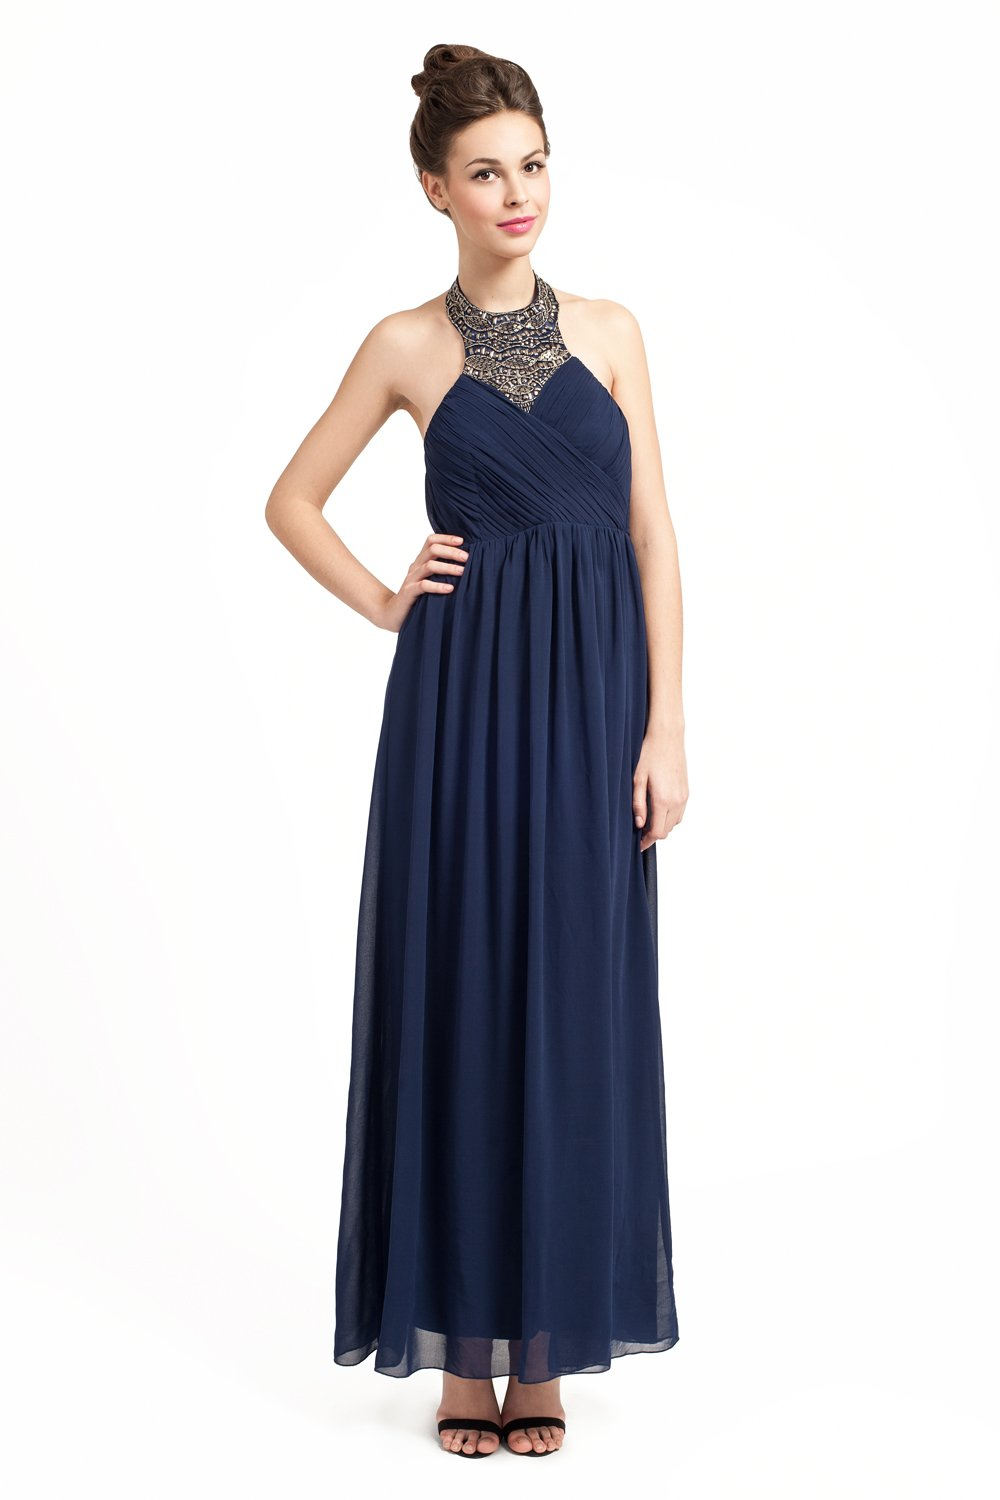 Navy Maxi Dress Dressedupgirl Com